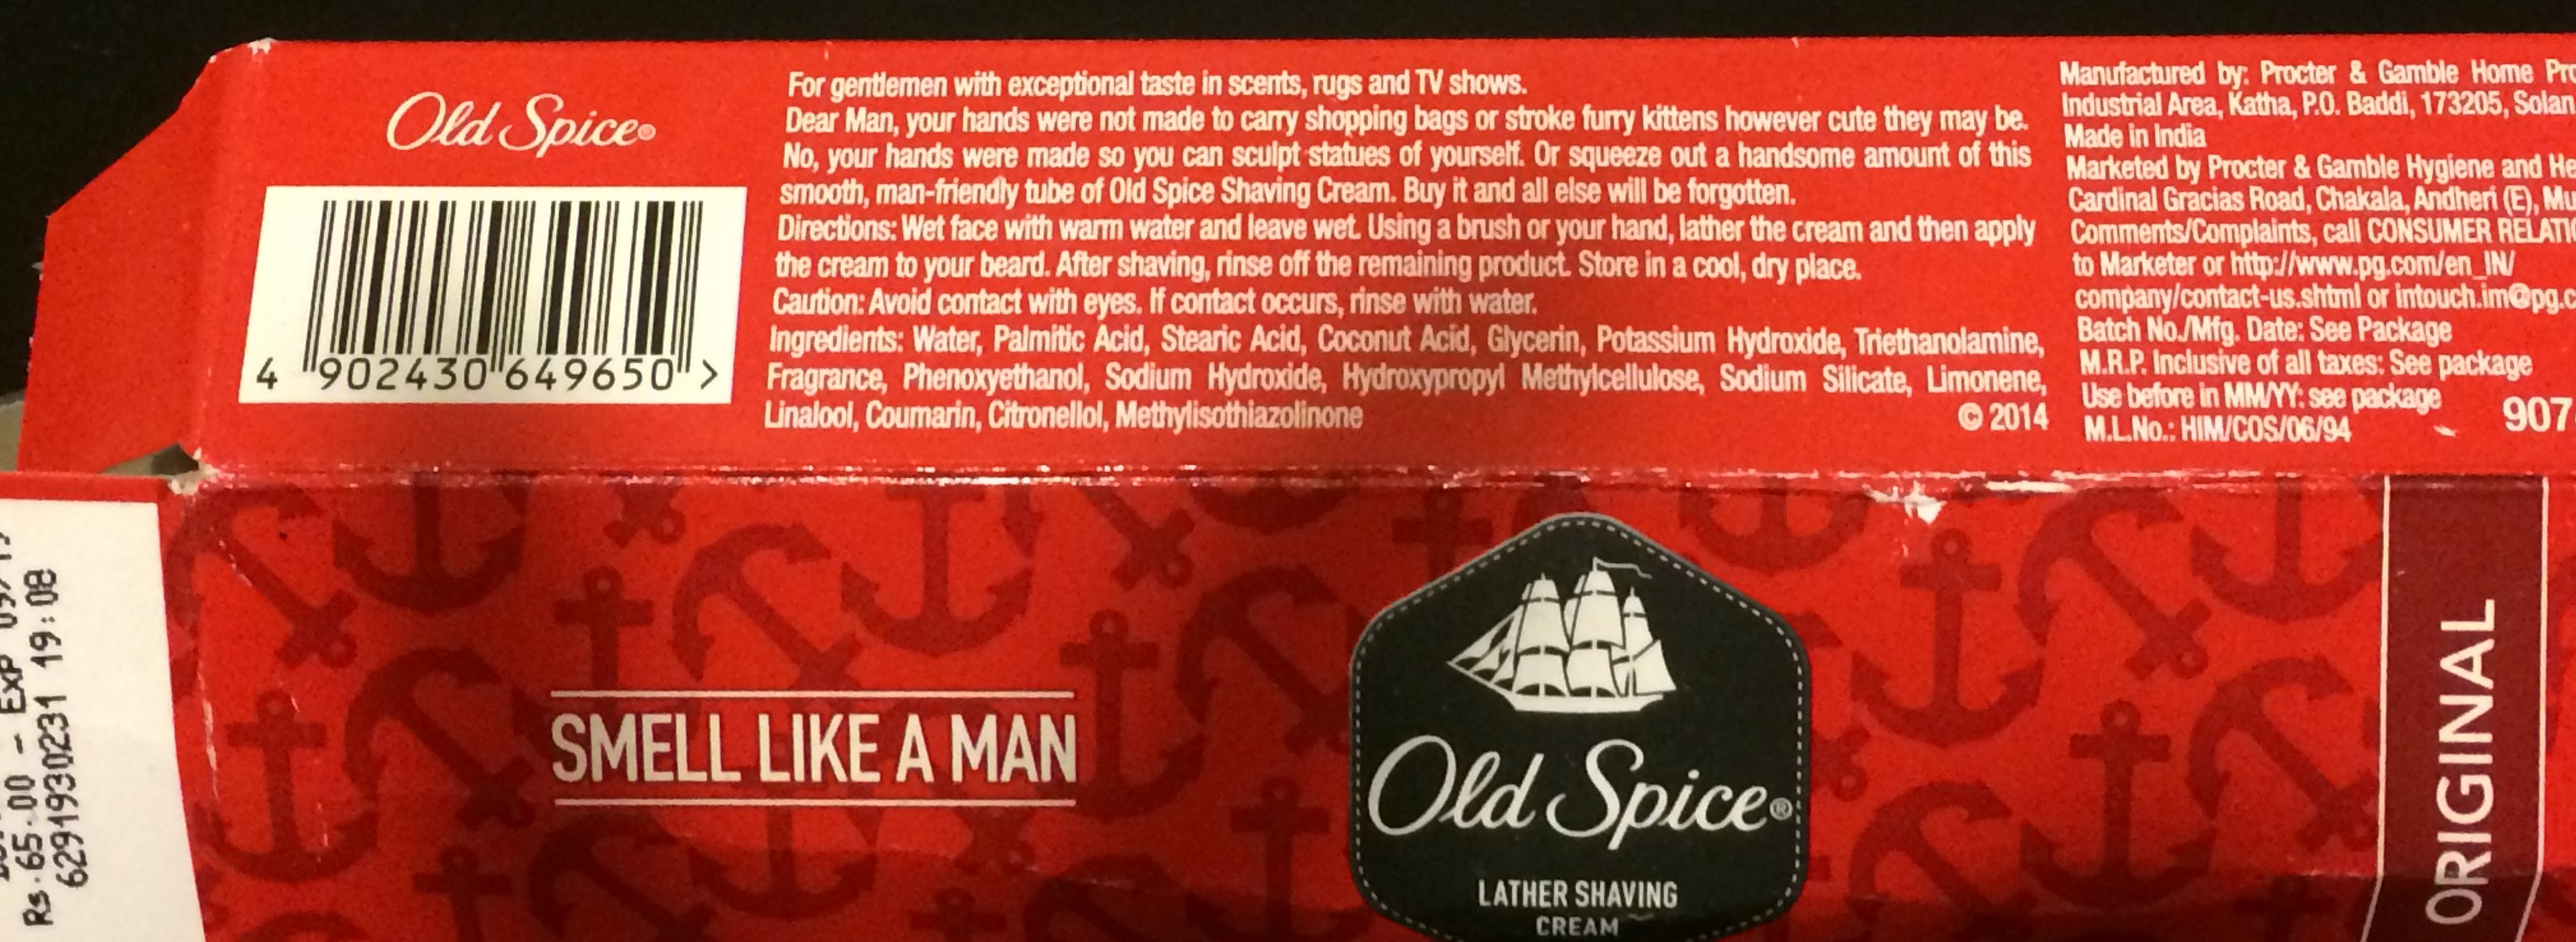 old-spice-shaving-cream